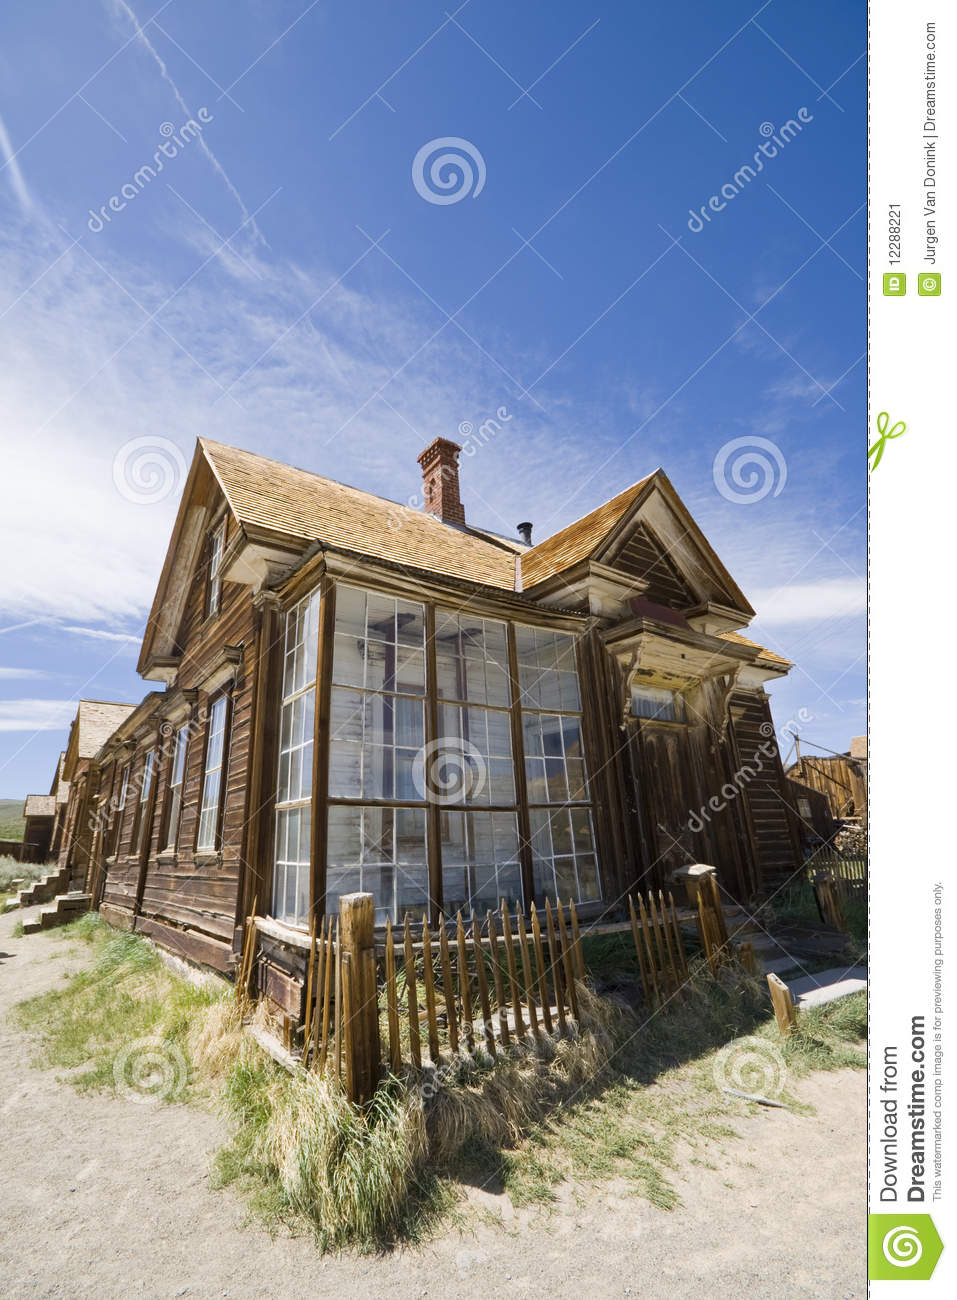 Beautiful old western style house stock image image of for Western style houses